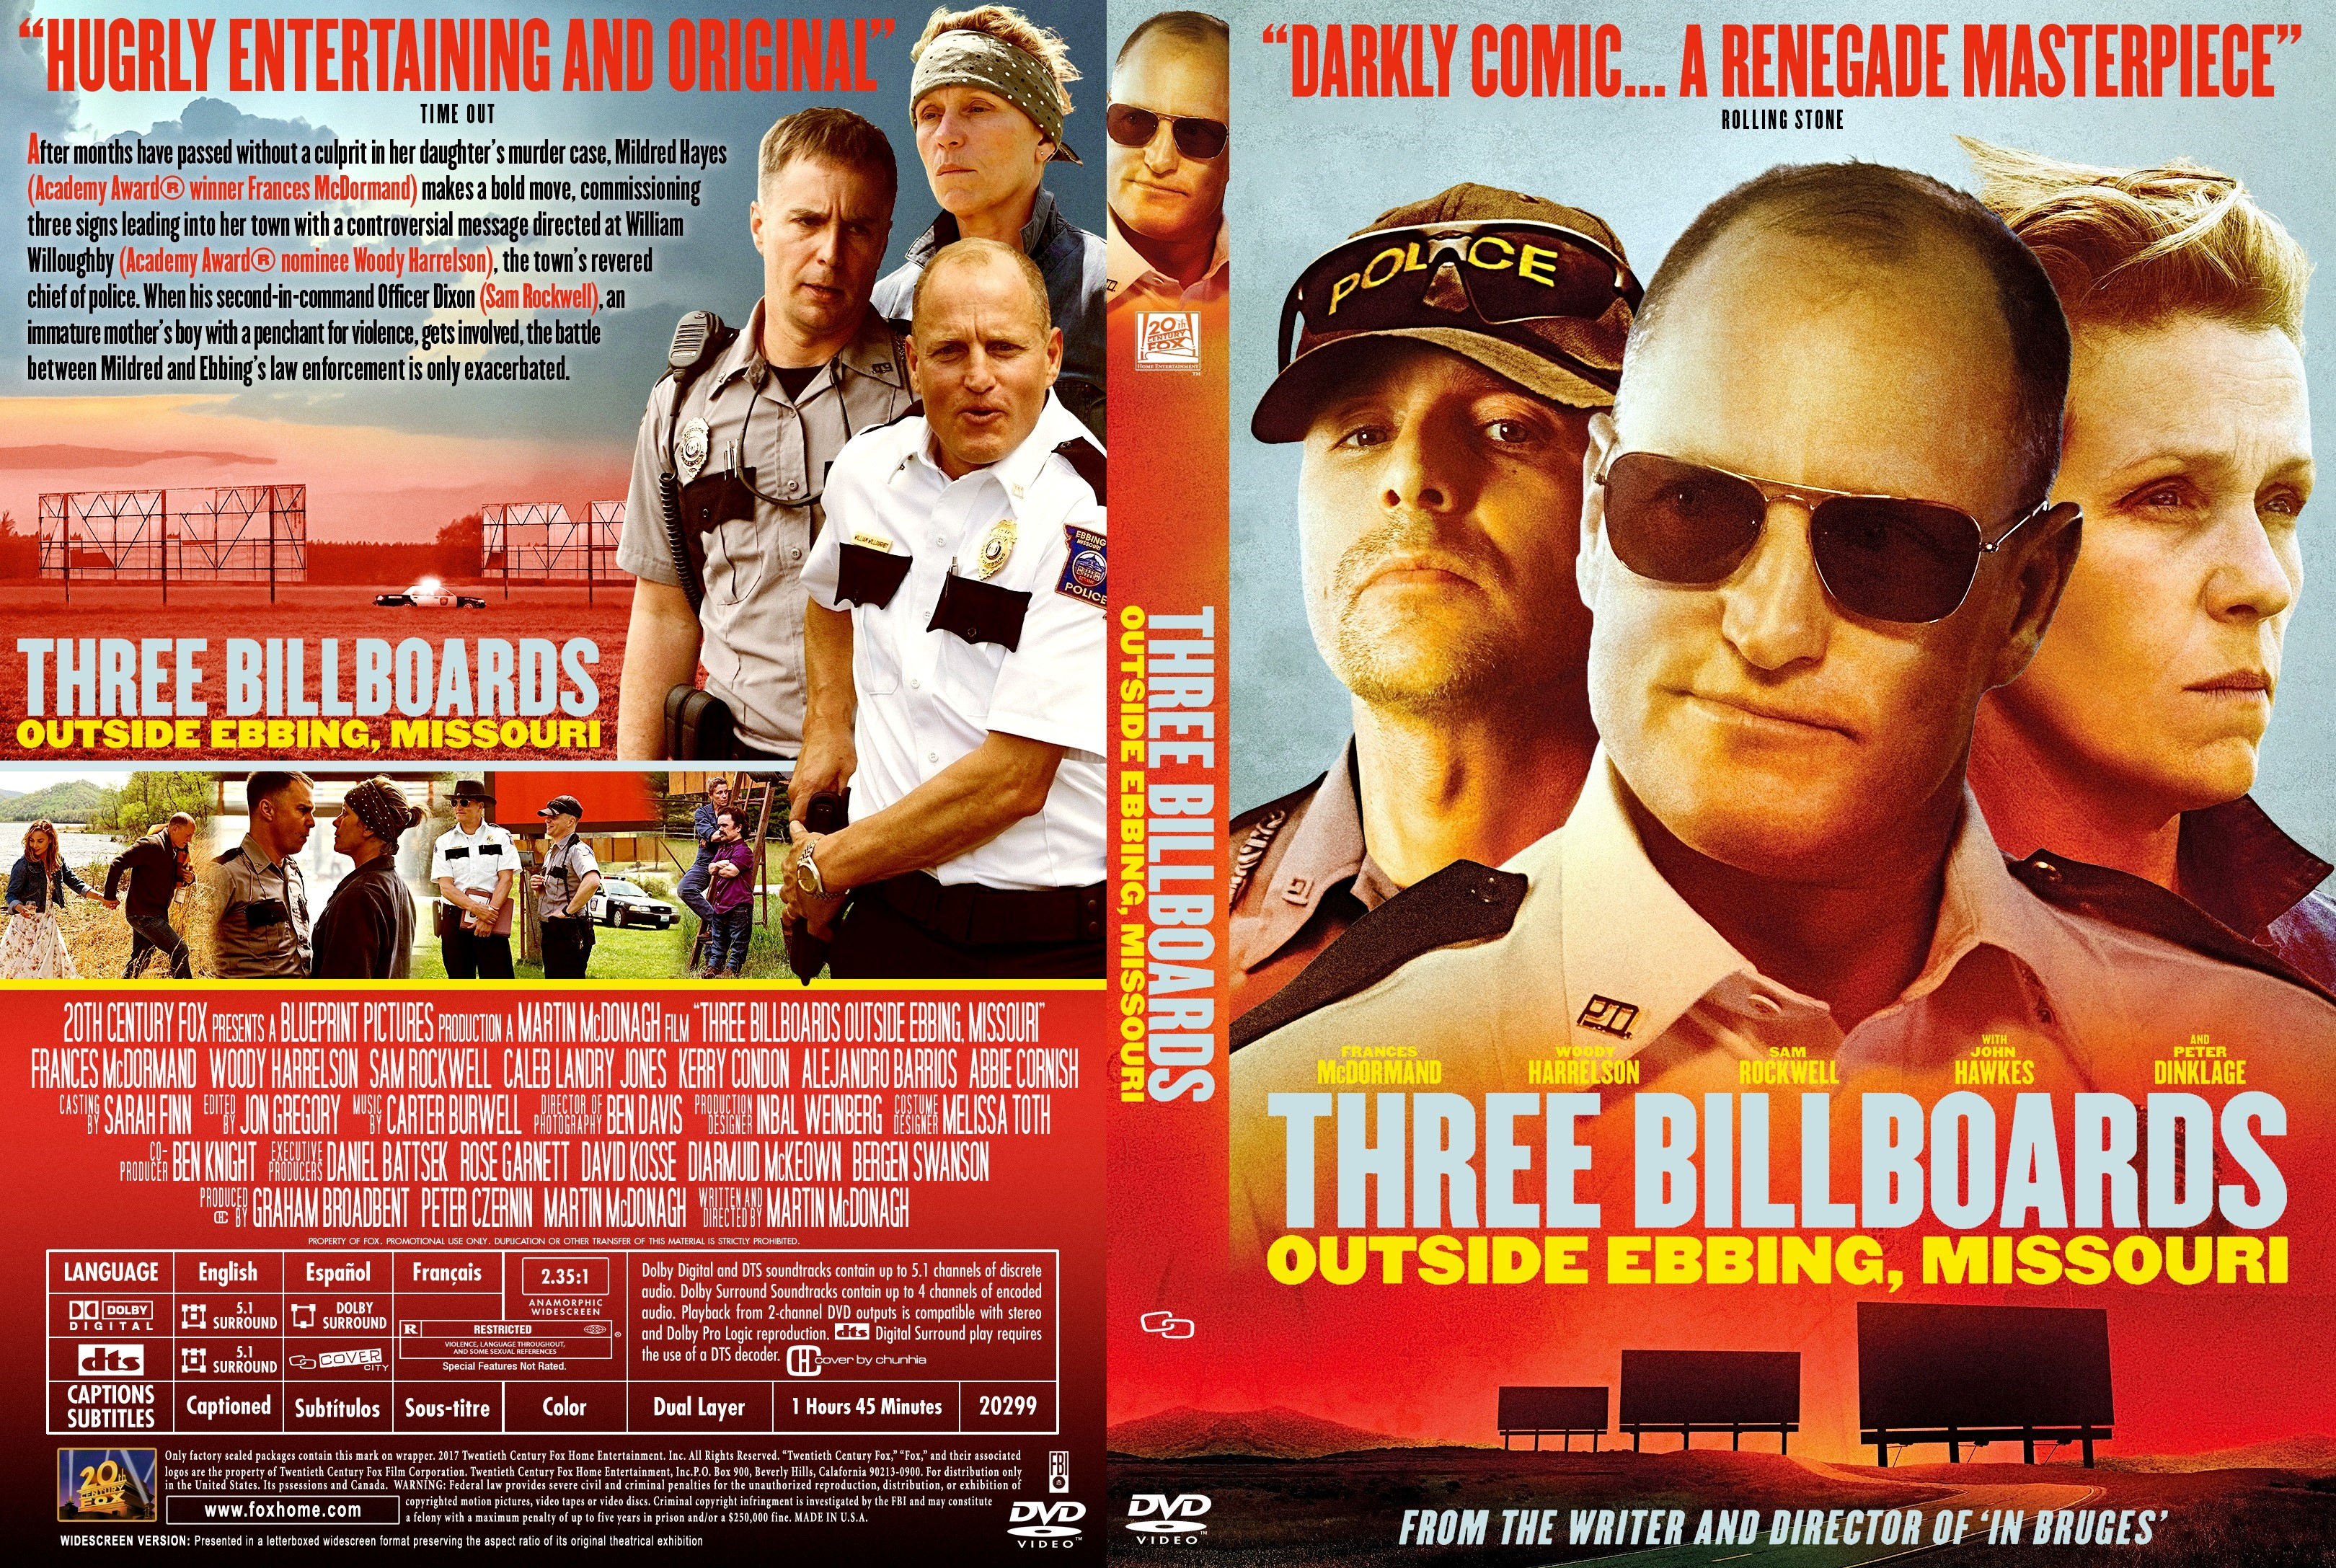 Three billboards outside ebbing missouri dvd cover cover addict three billboards outside ebbing missouri dvd cover malvernweather Images